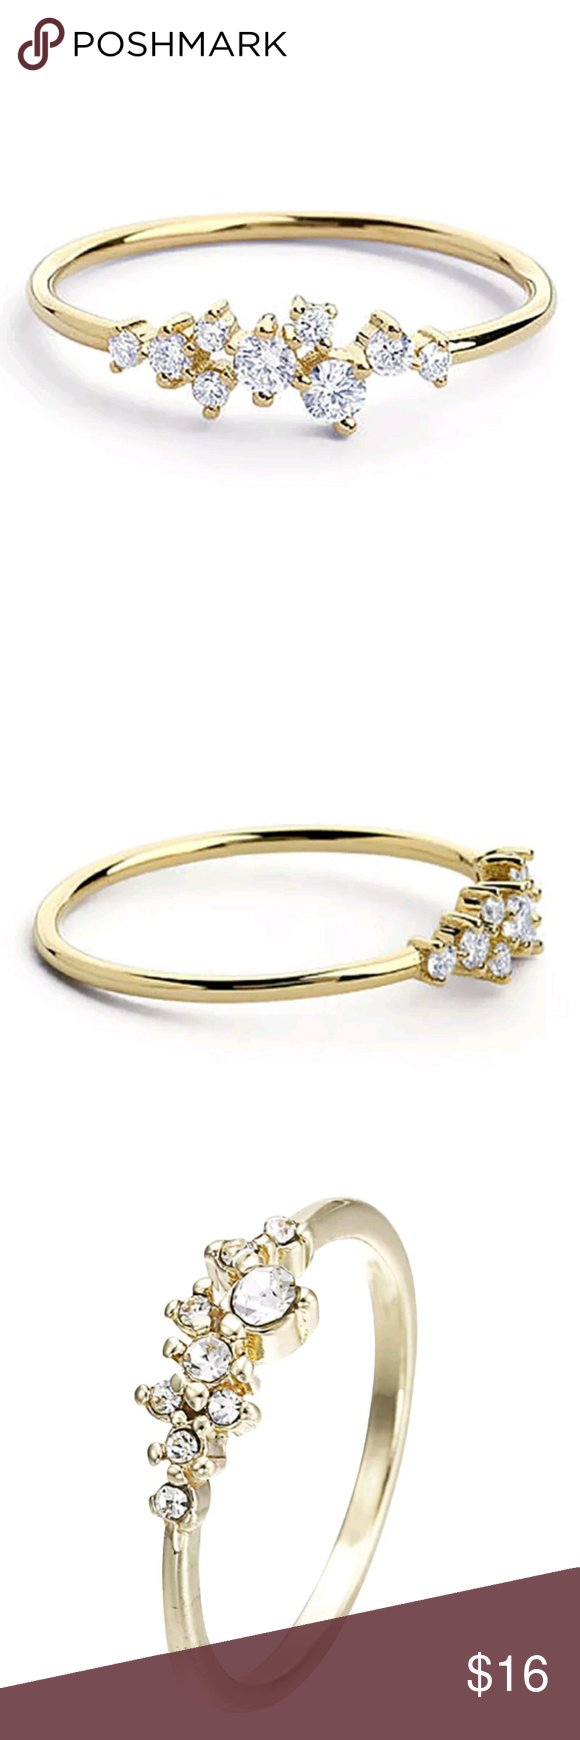 Brand New Minimalist Cubic Zirconia Gold Ring Boutique